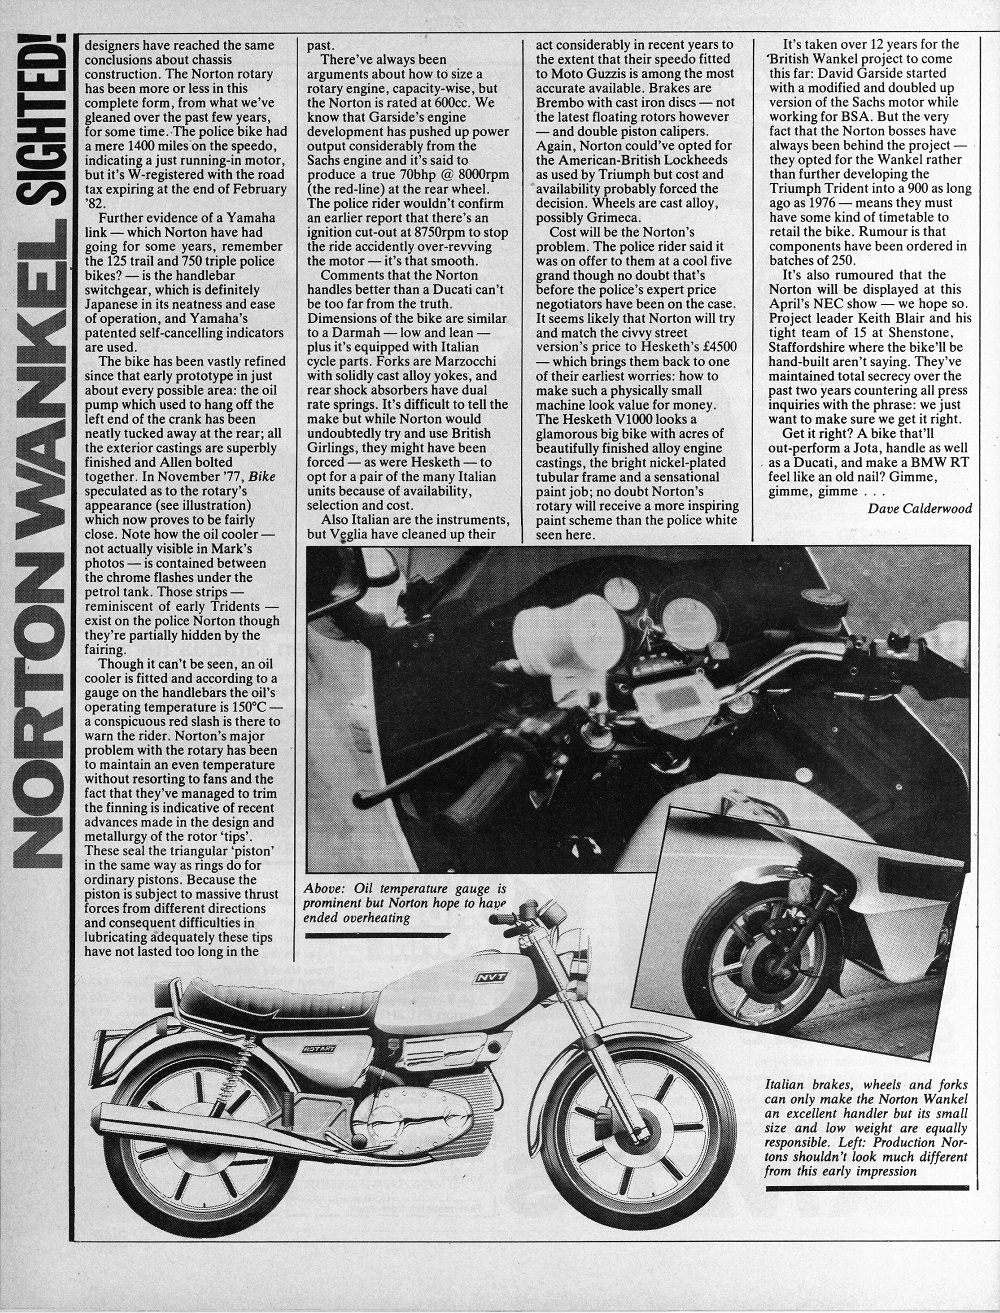 1982 Norton Wankel road test.4.jpg